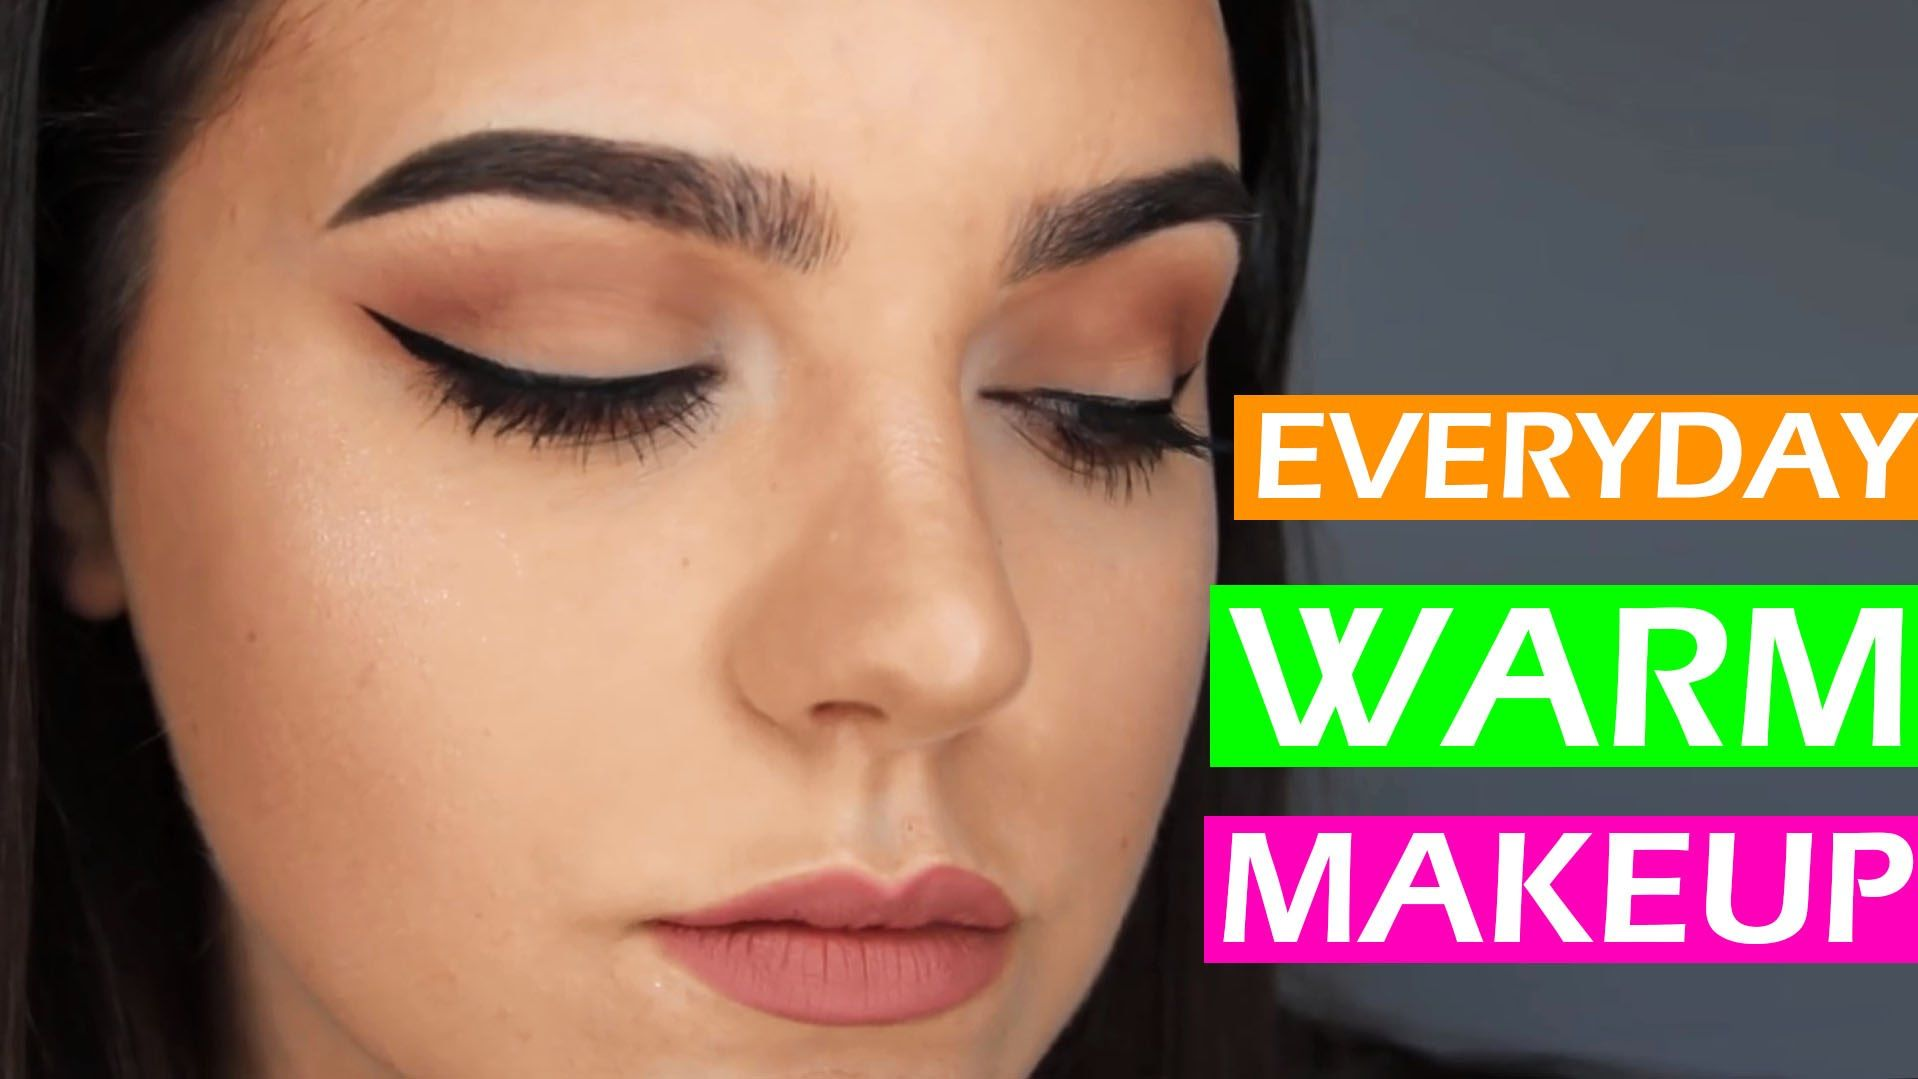 EVERYDAY WARM NEUTRAL FULL FACE MAKEUP TUTORIAL FOR